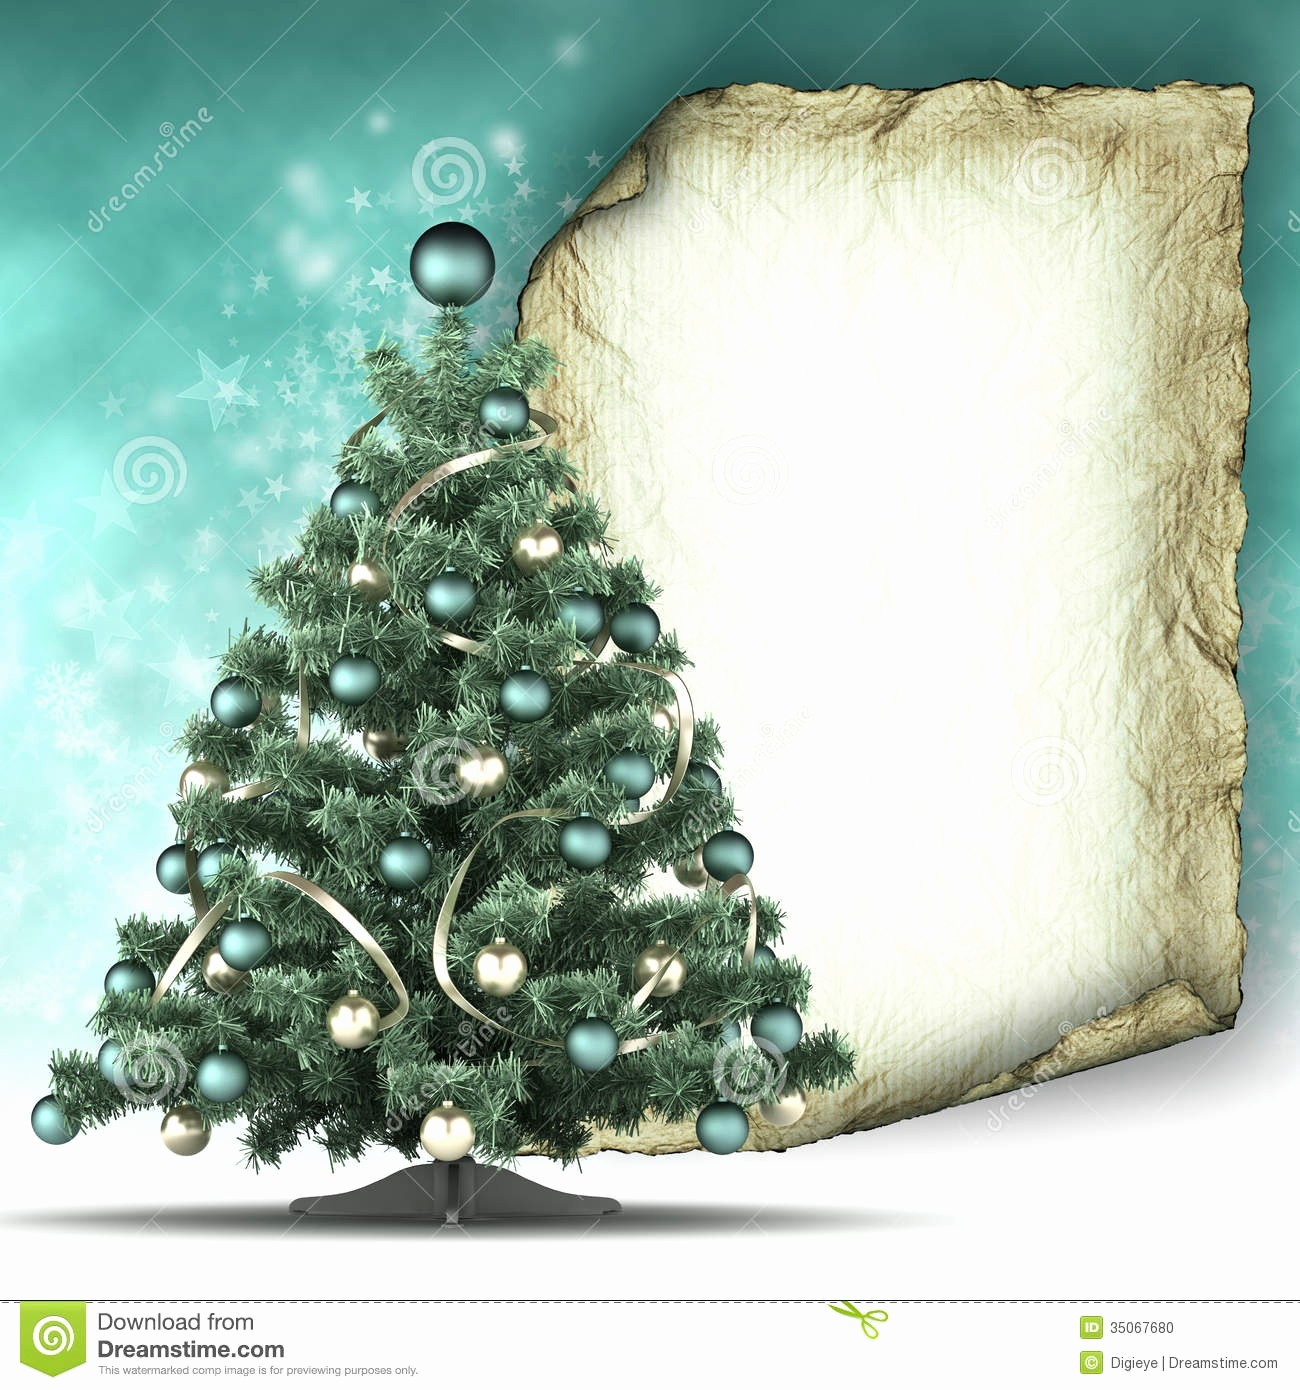 Holiday Paper Templates Free Download Luxury Christmas Card Template Xmas Tree and Paper Sheet Stock